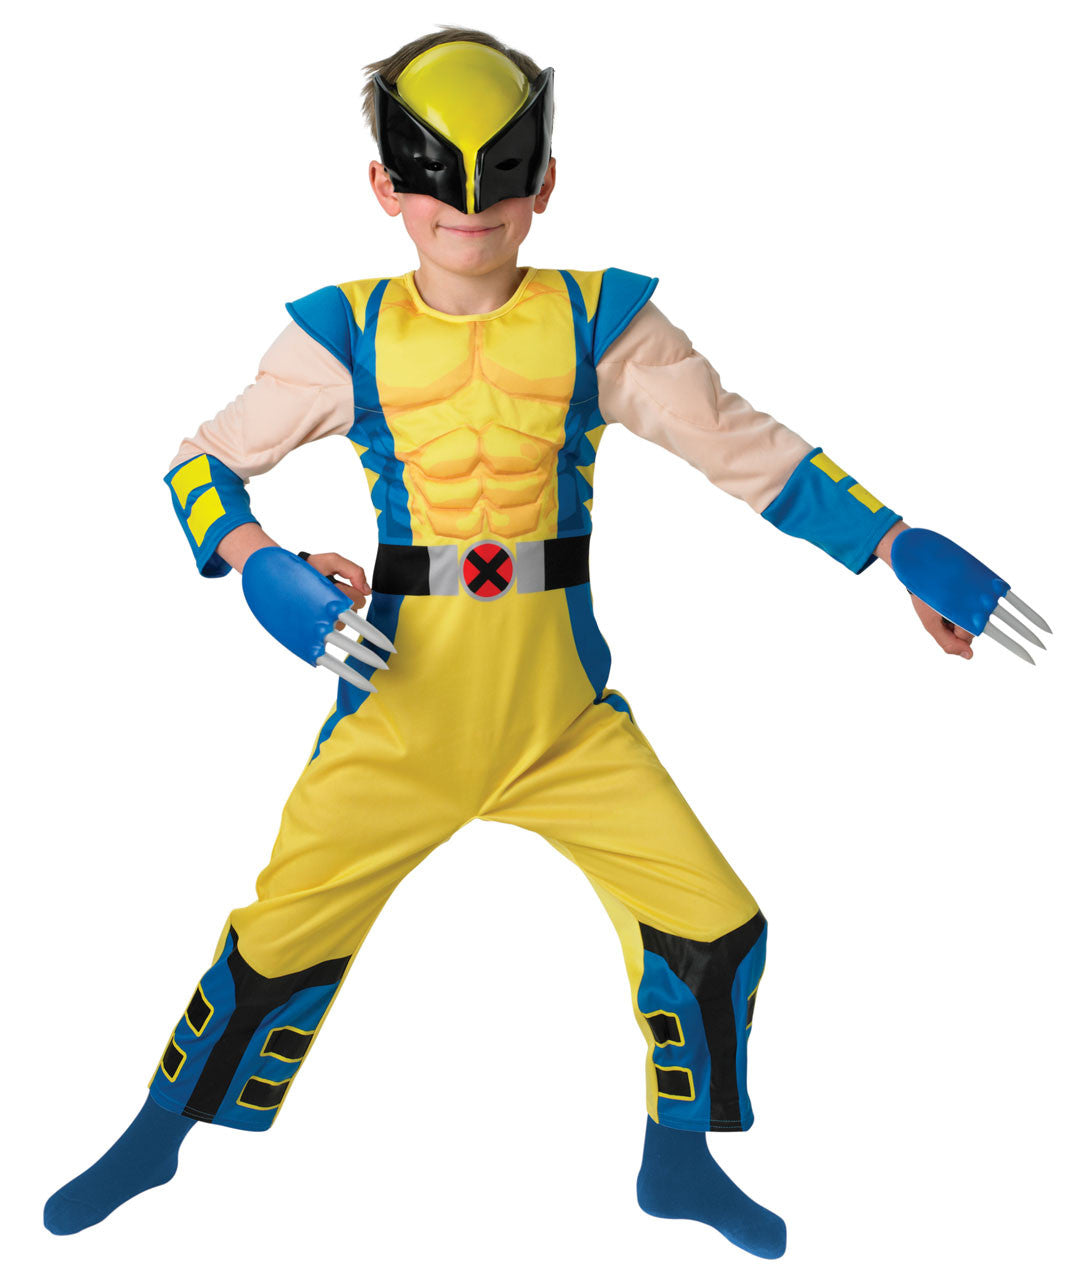 WOLVERINE DELUXE CHILD COSTUME - SIZE S